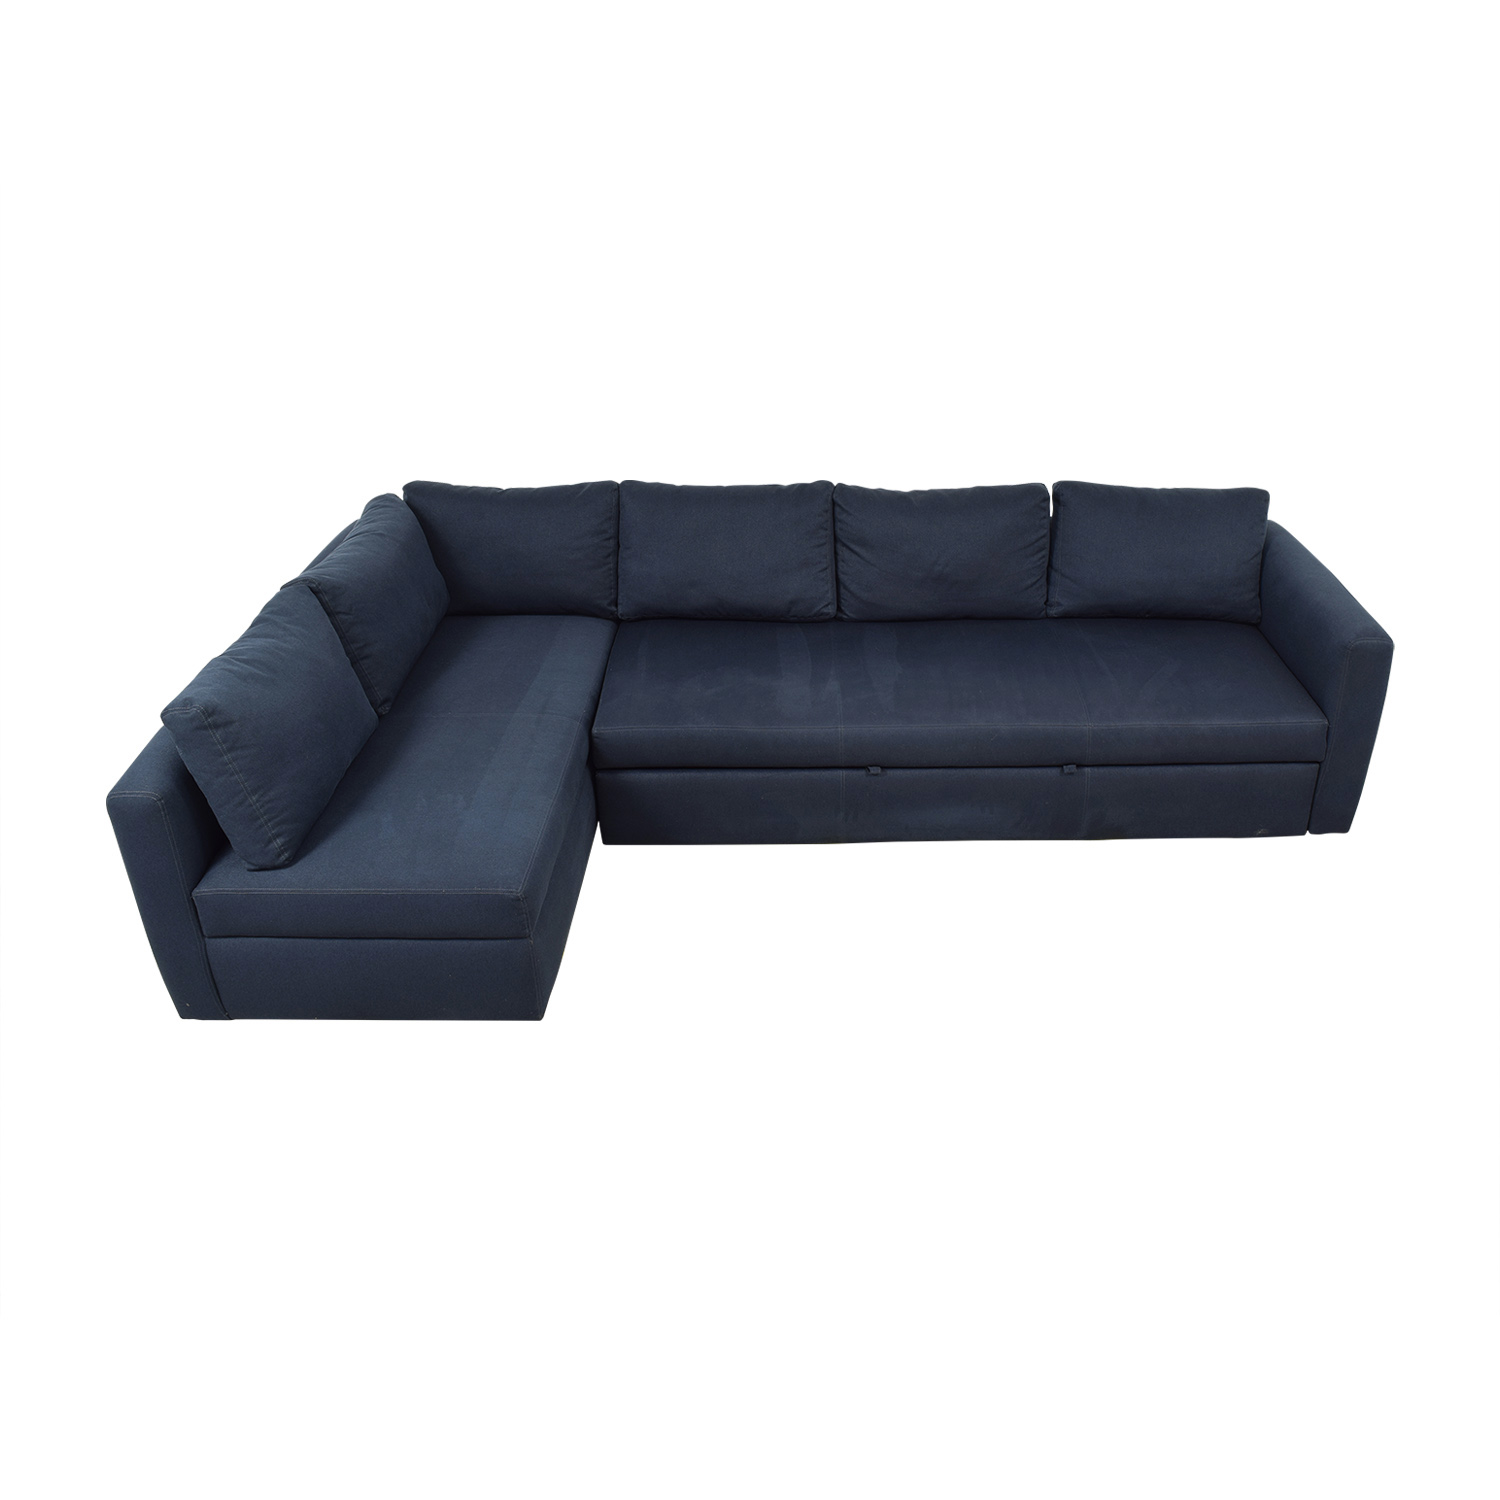 52% OFF - Room & Board Room & Board Sectional Sleeper Sofa / Sofas